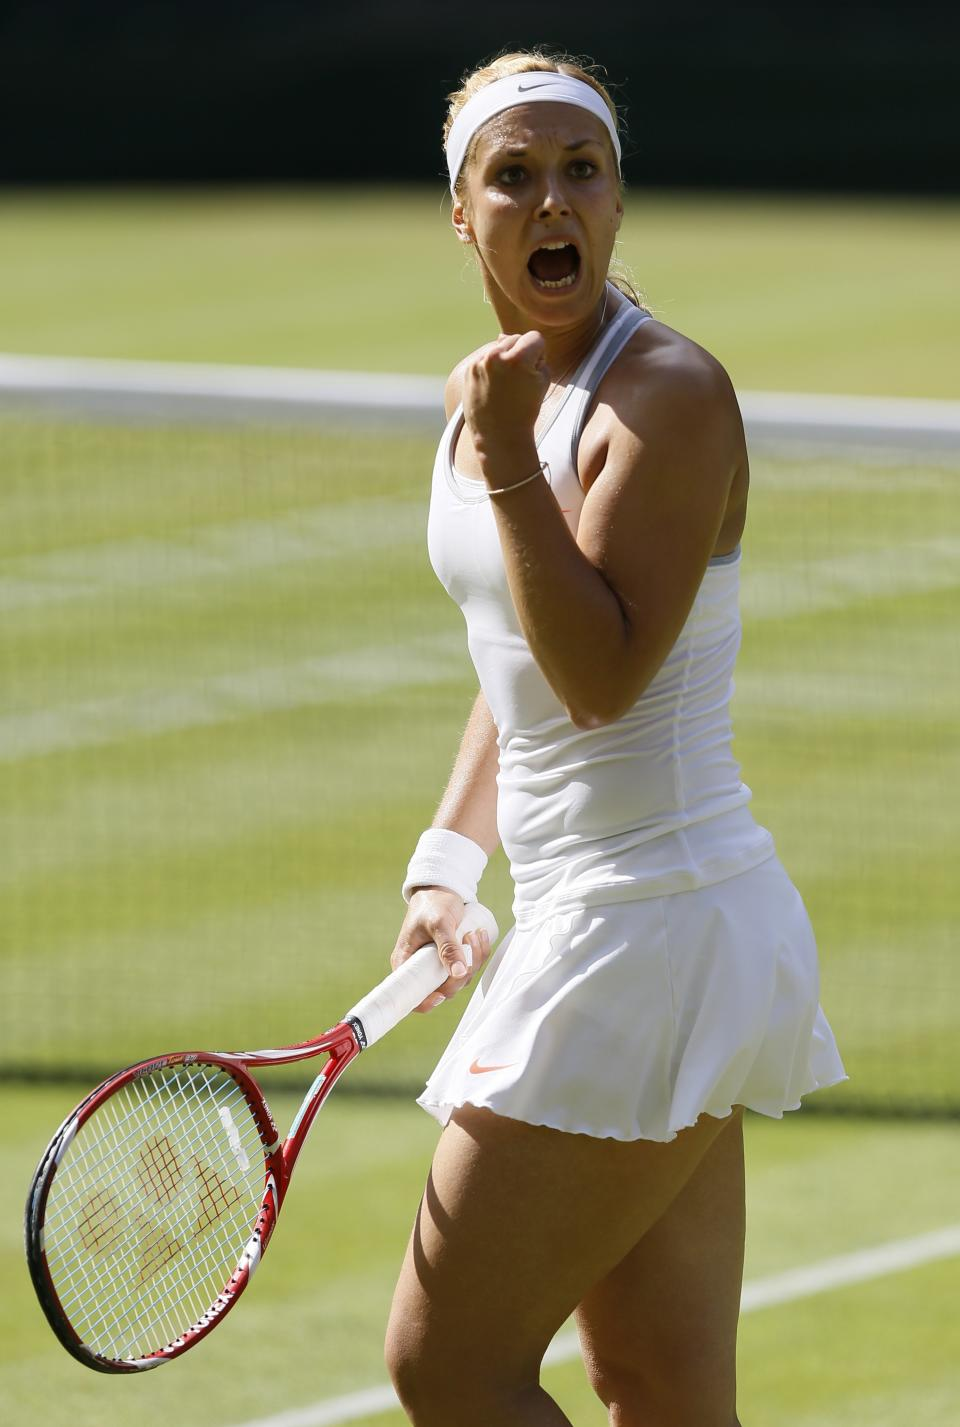 Sabine Lisicki of Germany reacts during her Women's singles semifinal match against Agnieszka Radwanska of Poland at the All England Lawn Tennis Championships in Wimbledon, London, Thursday, July 4, 2013. (AP Photo/Kirsty Wigglesworth)